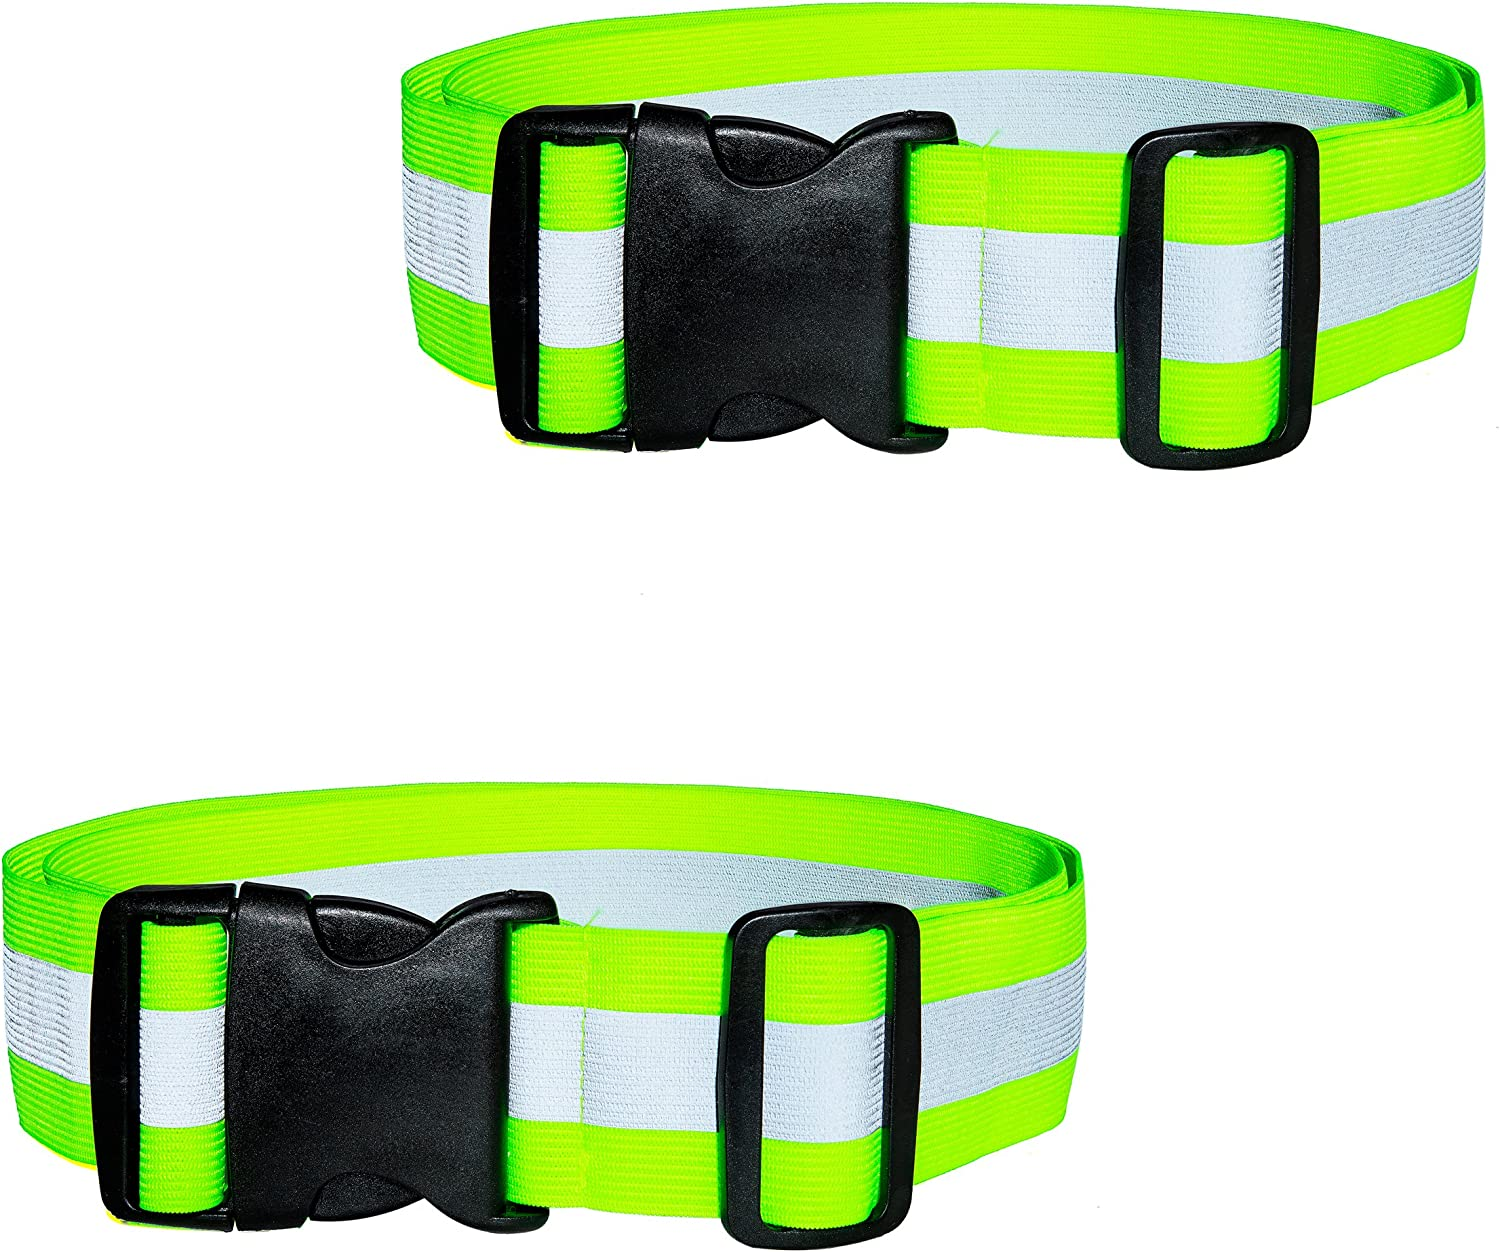 DASHGLOW - Cheap super special price 2-6 Pack Reflective Glow Gear Belt Sales for sale Pt Safety